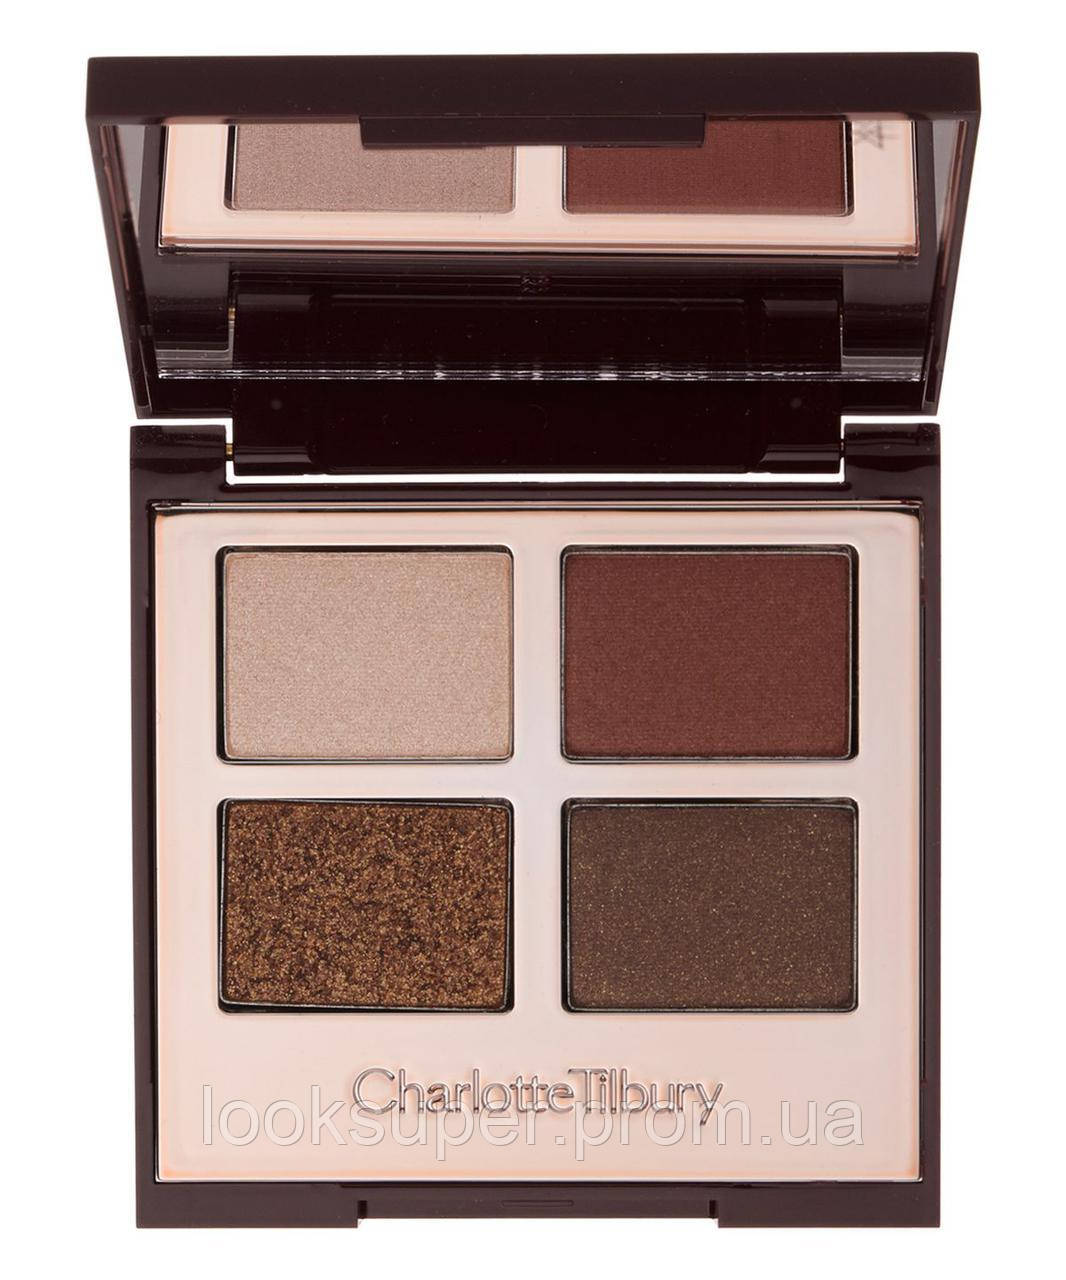 Палетка теней Charlotte Tilbury Luxury Palette - The Dolce Vita